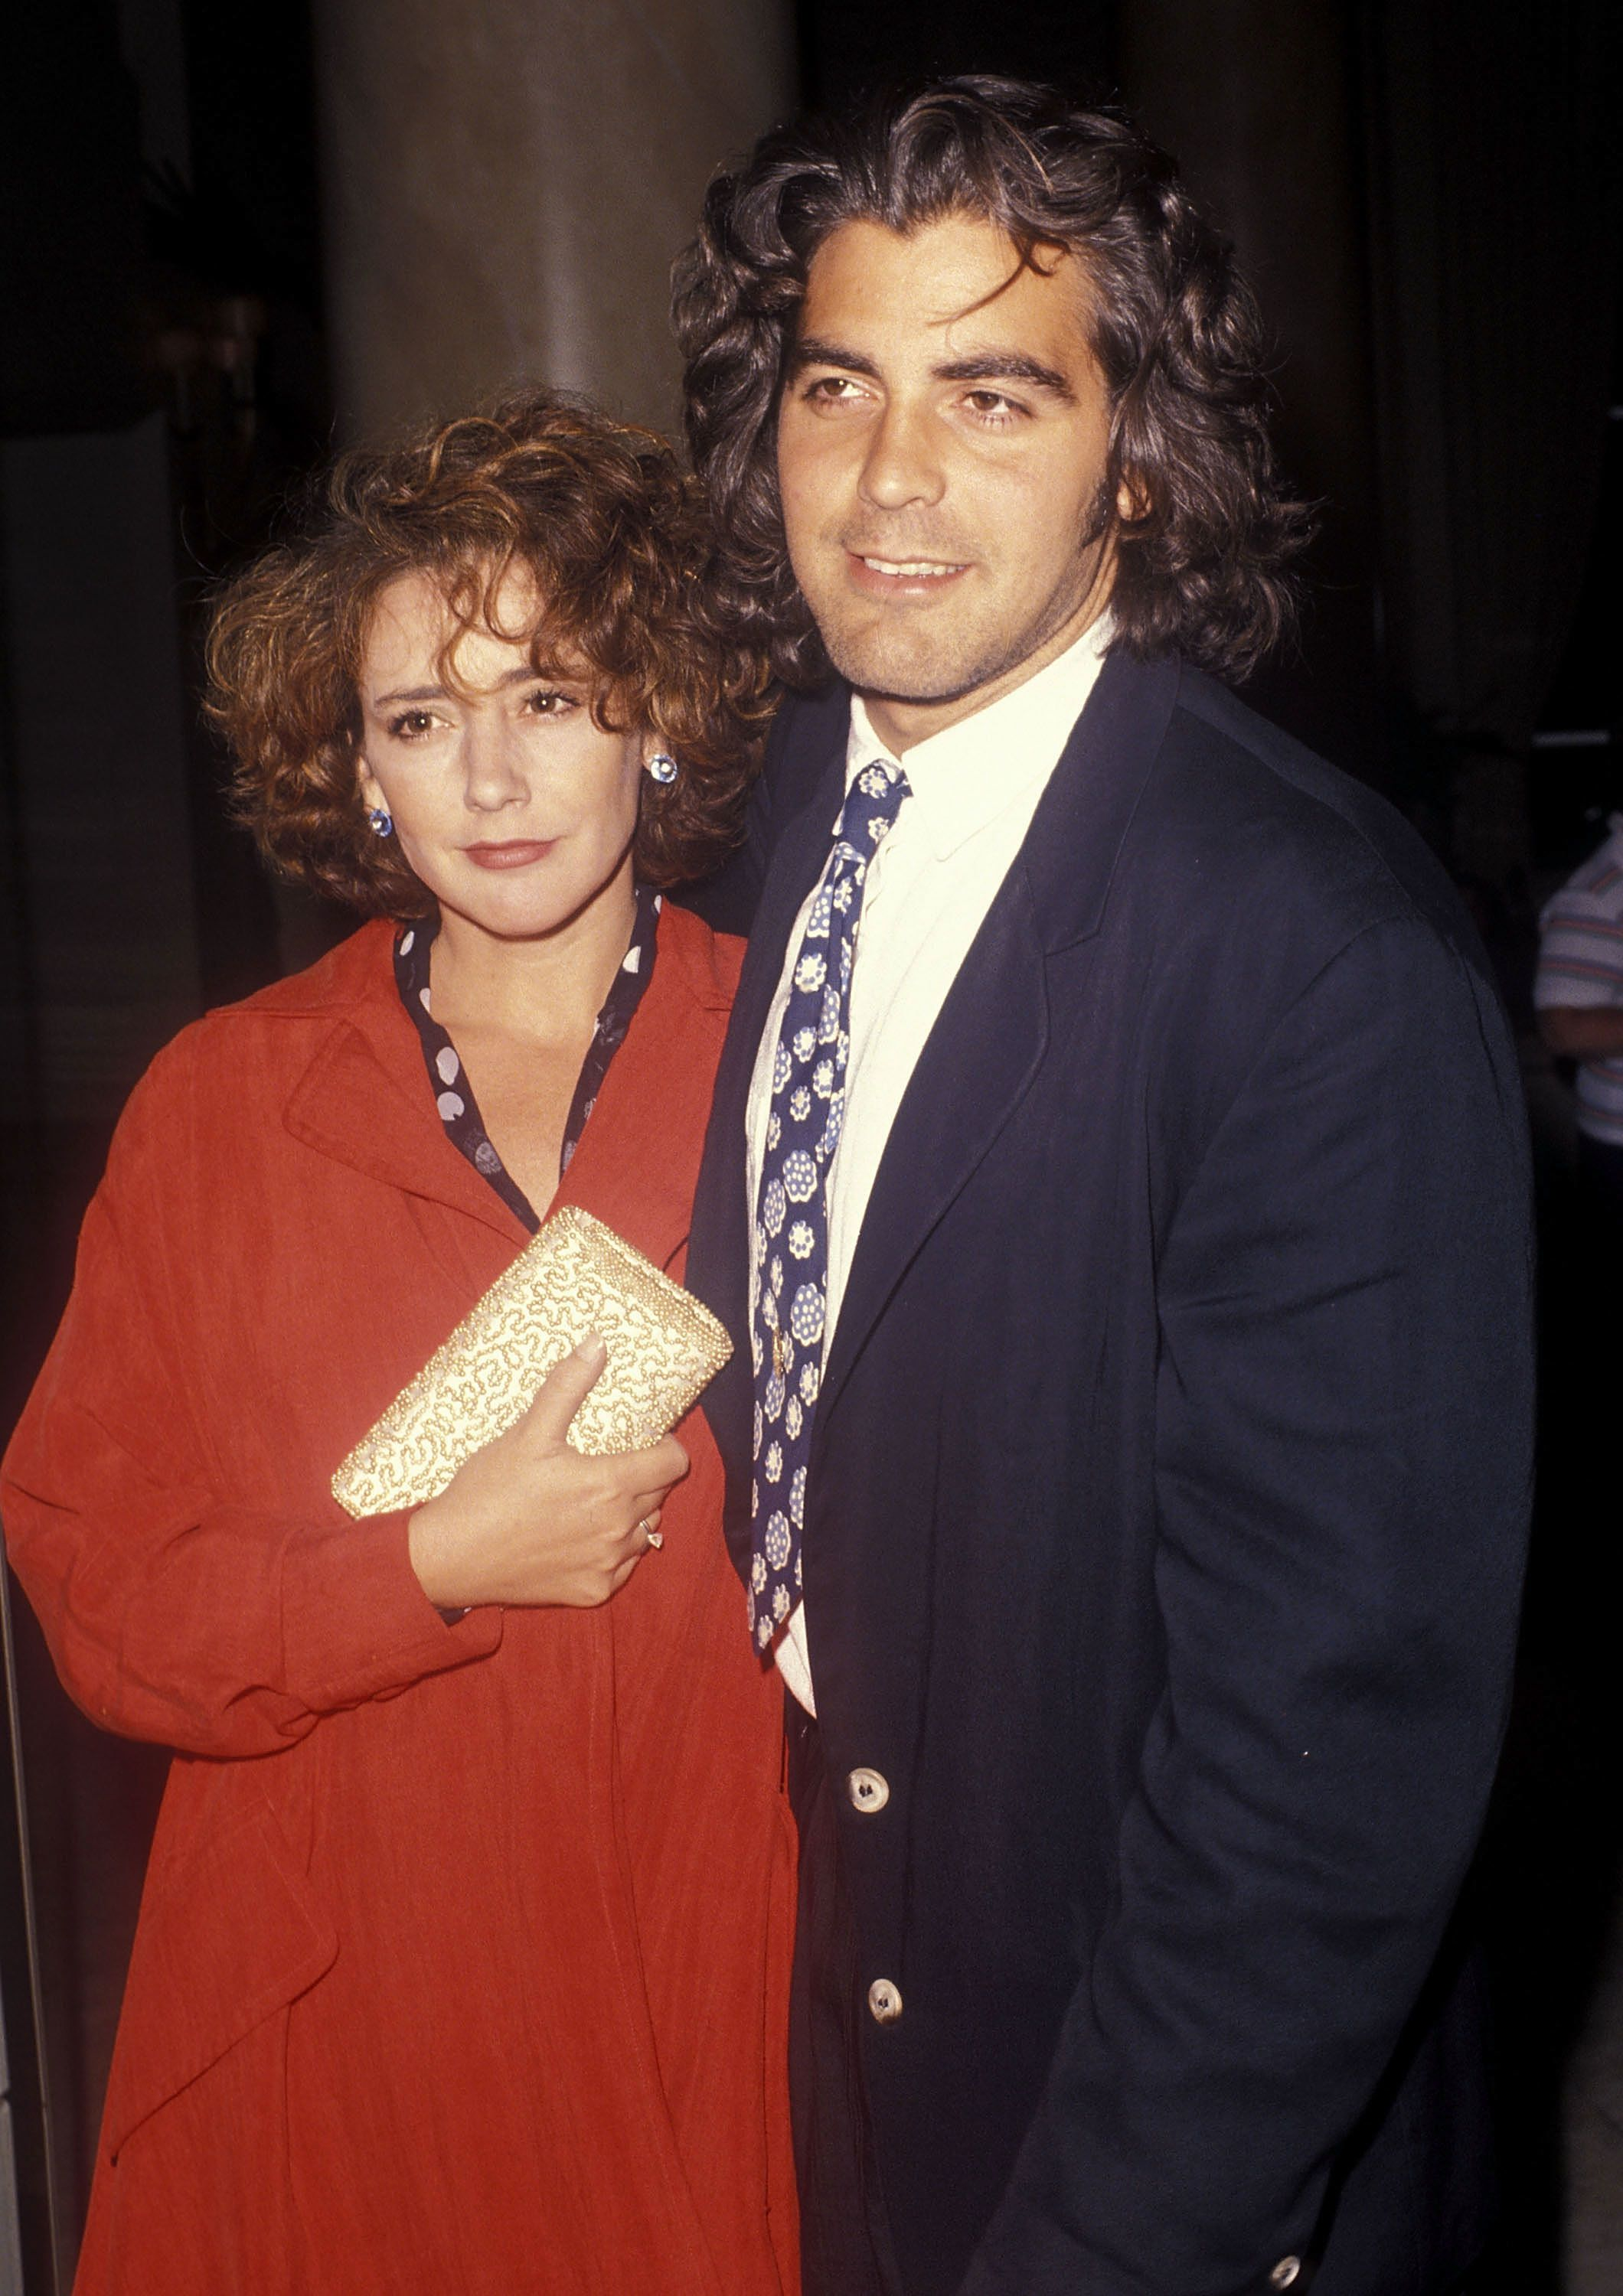 CENTURY CITY, CA - JUNE 14:   Actor George Clooney and wife Talia Balsam attend the ABC Television Affiliates Party on June 14, 1990 at the Century Plaza Hotel in Los Angeles, California. (Photo by Ron Galella, Ltd./WireImage)